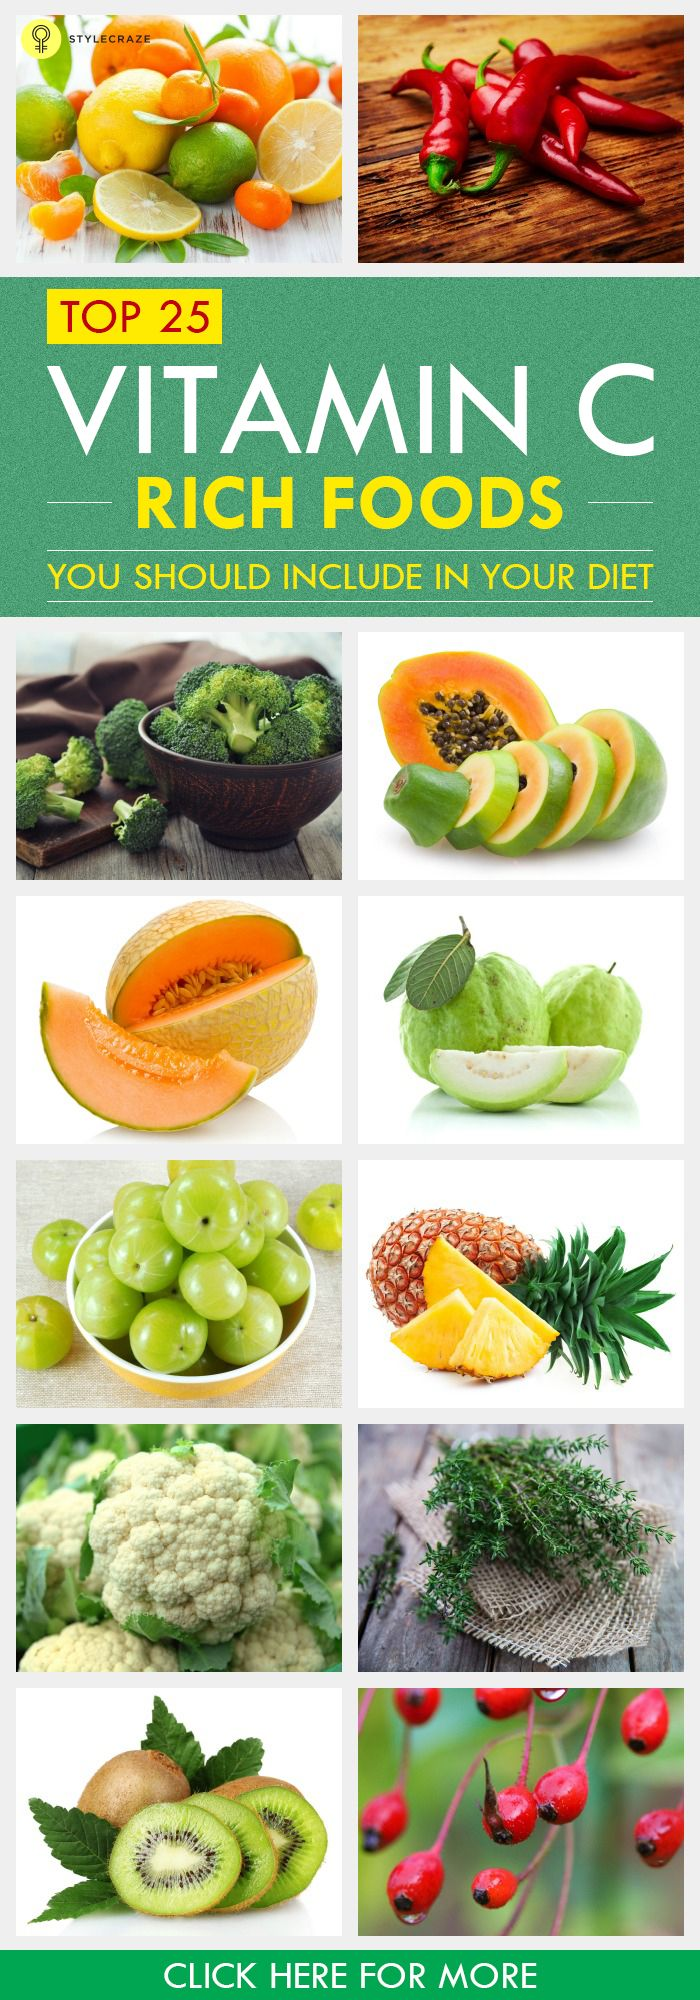 Vitamin C is one of the most important nutrients that the body needs. Here is a list of the top 25 vitamin C rich foods that will ensure that your ...